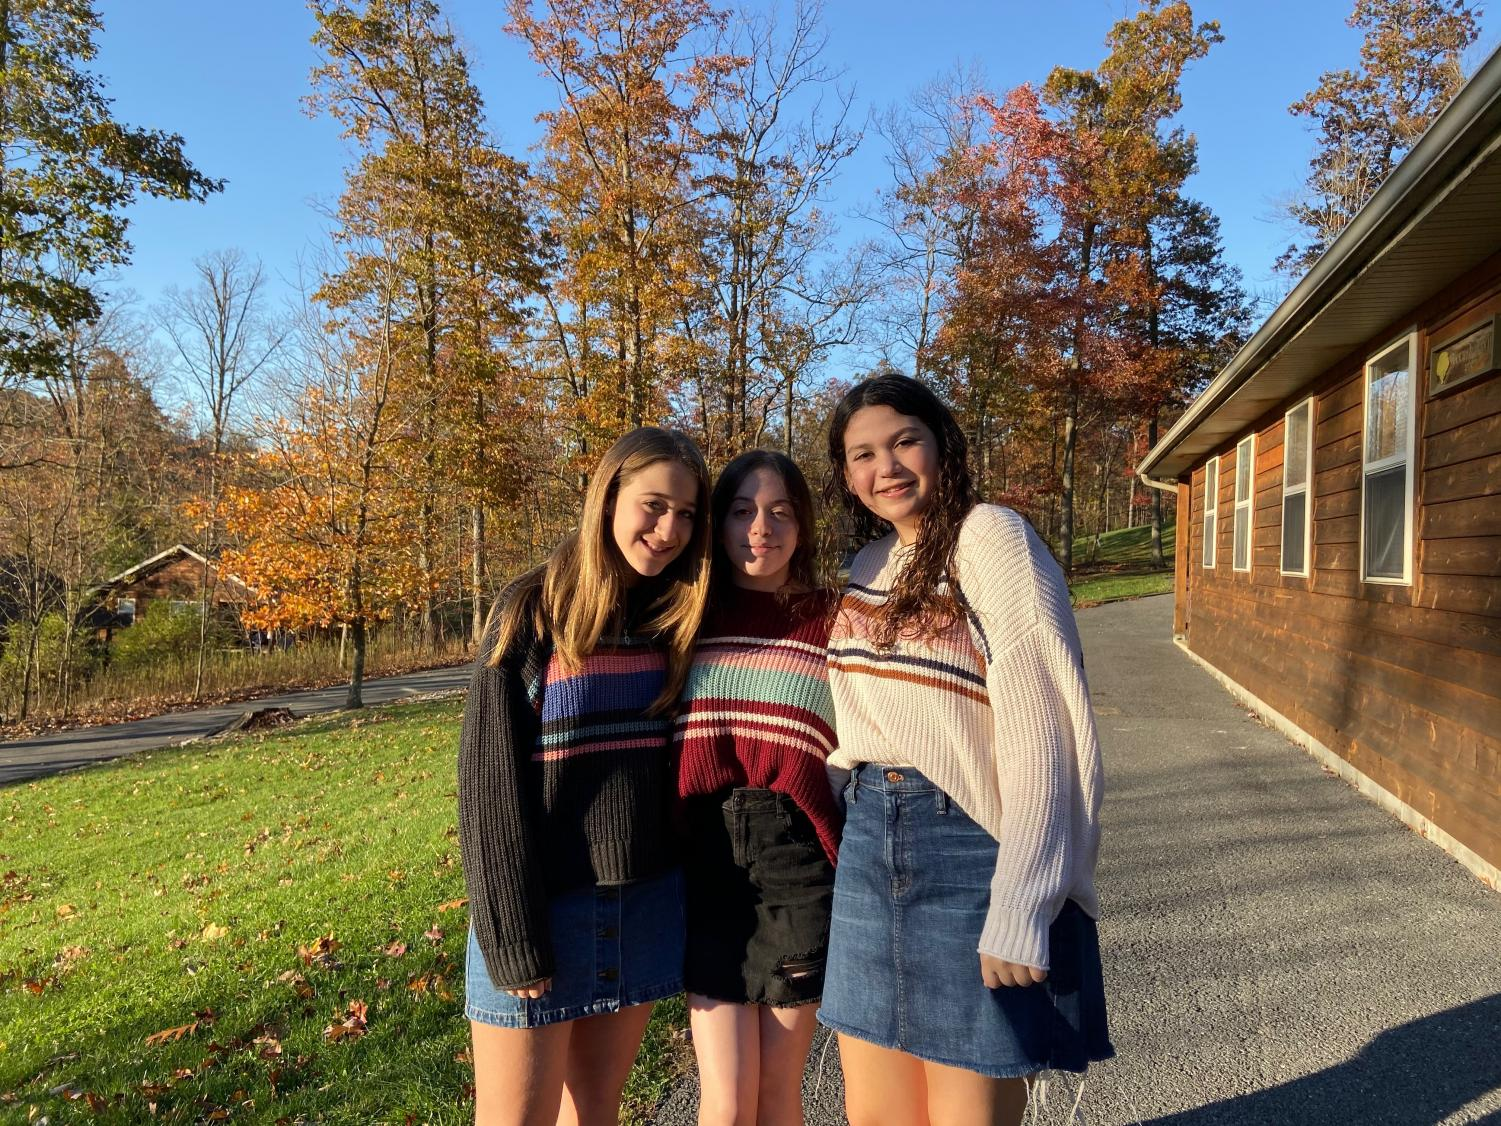 Freshmen Samantha Eidelman, Hadas Kabik and Samantha Vaisman enjoy their first Shabbaton.